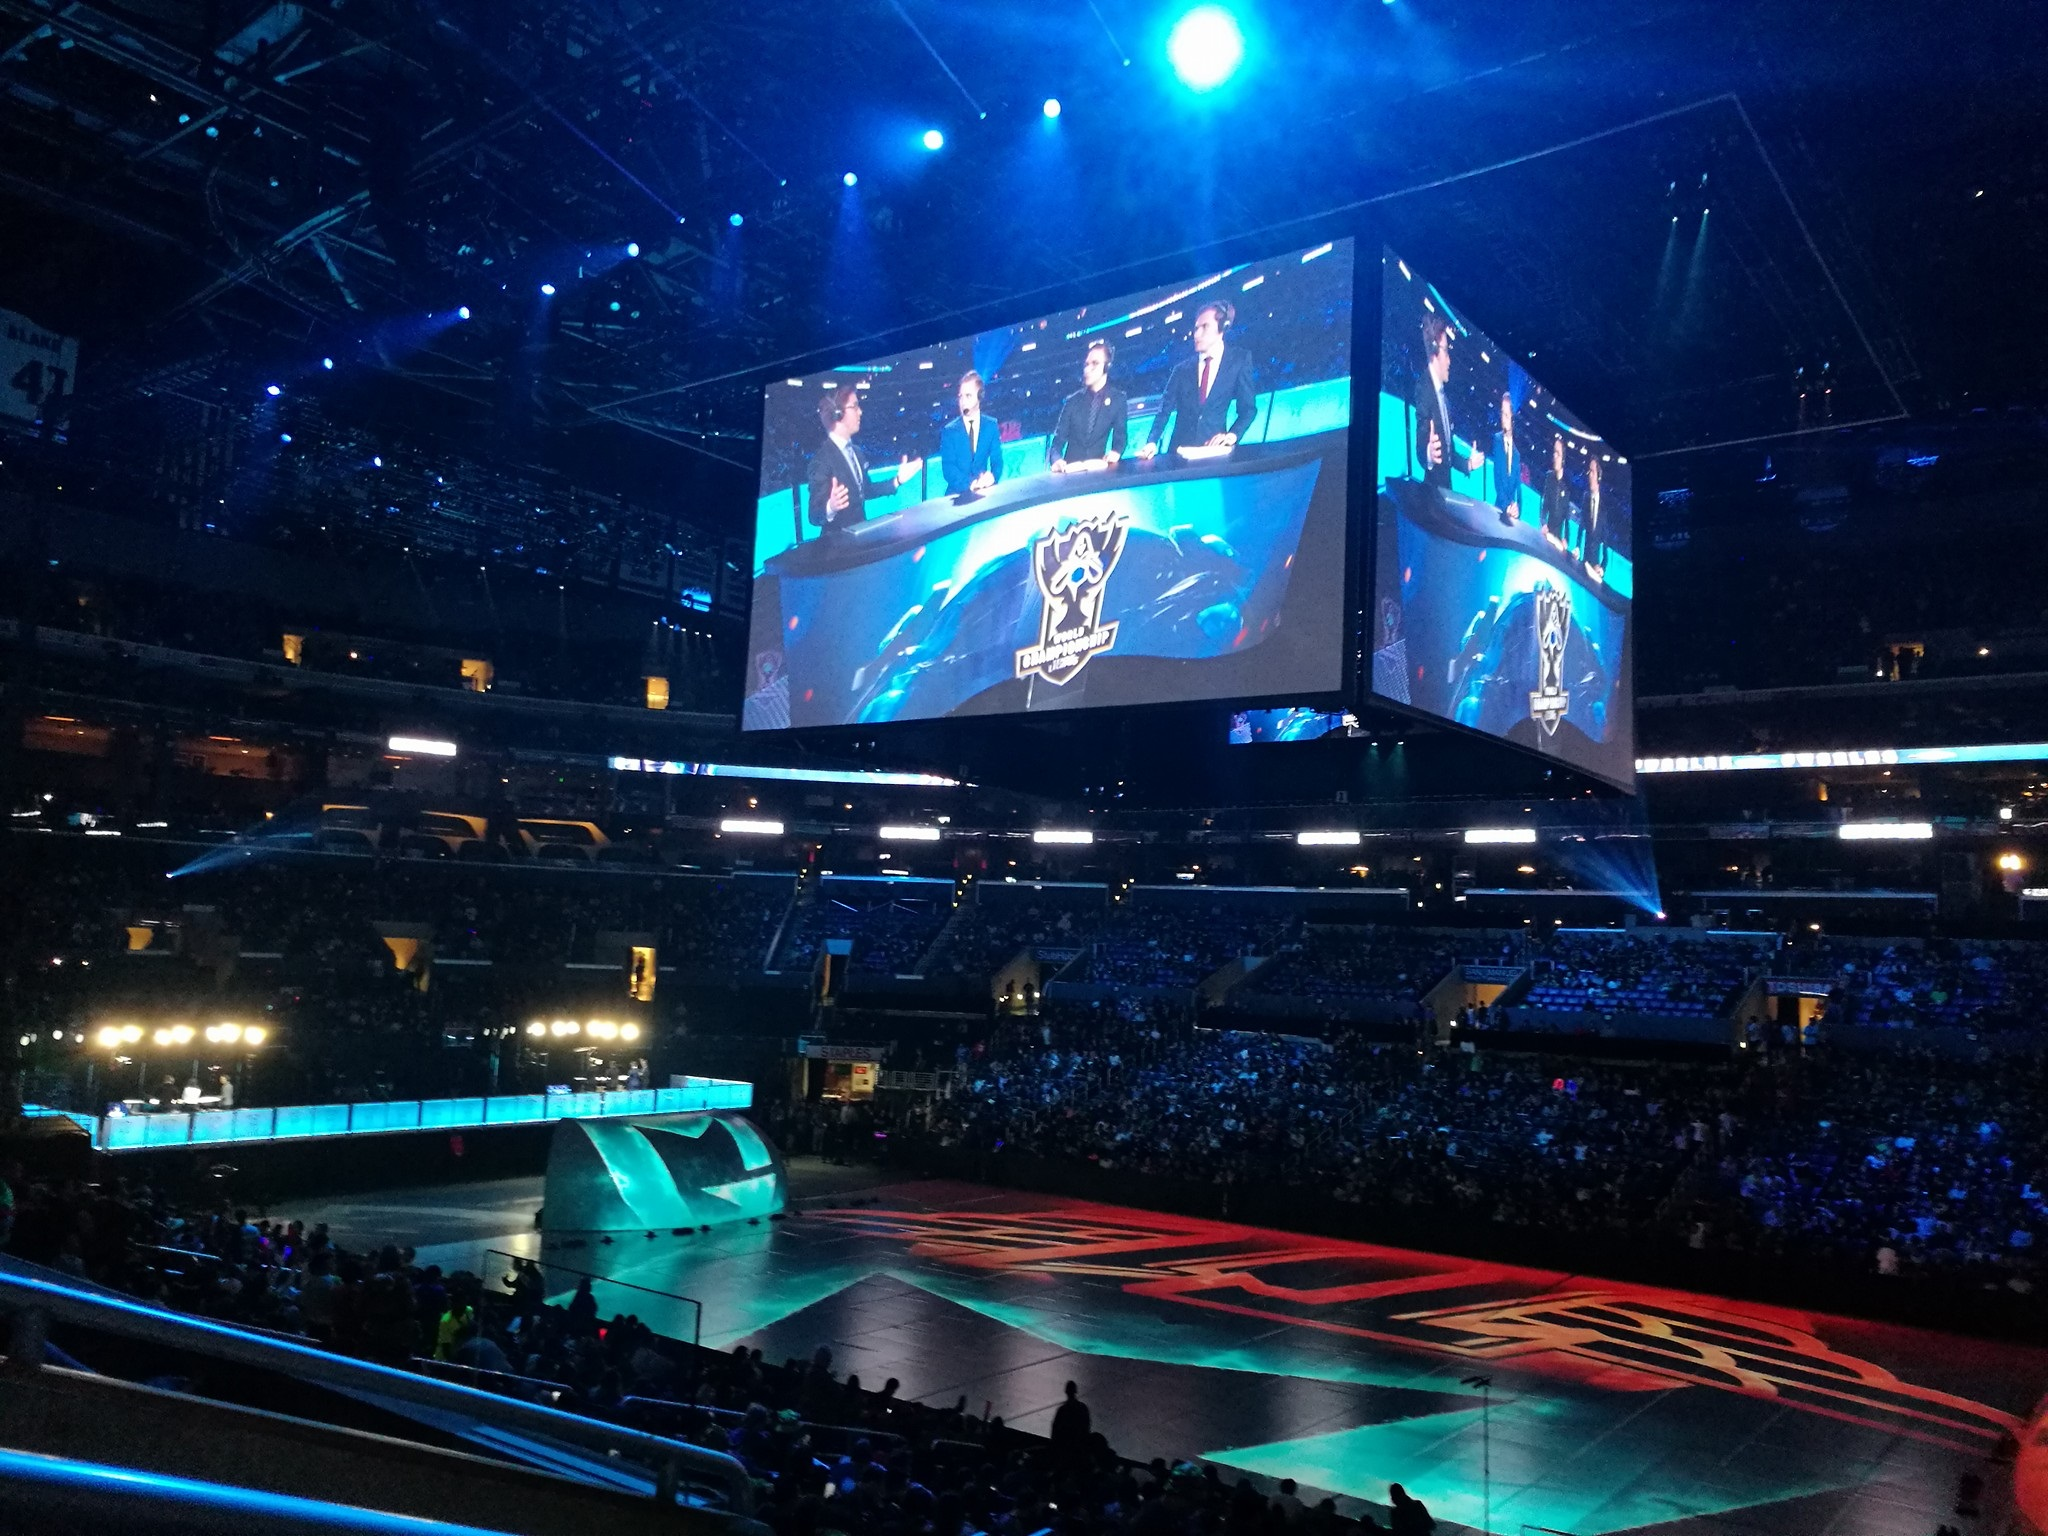 Benefits Of Using Led Screens At Sporting Events